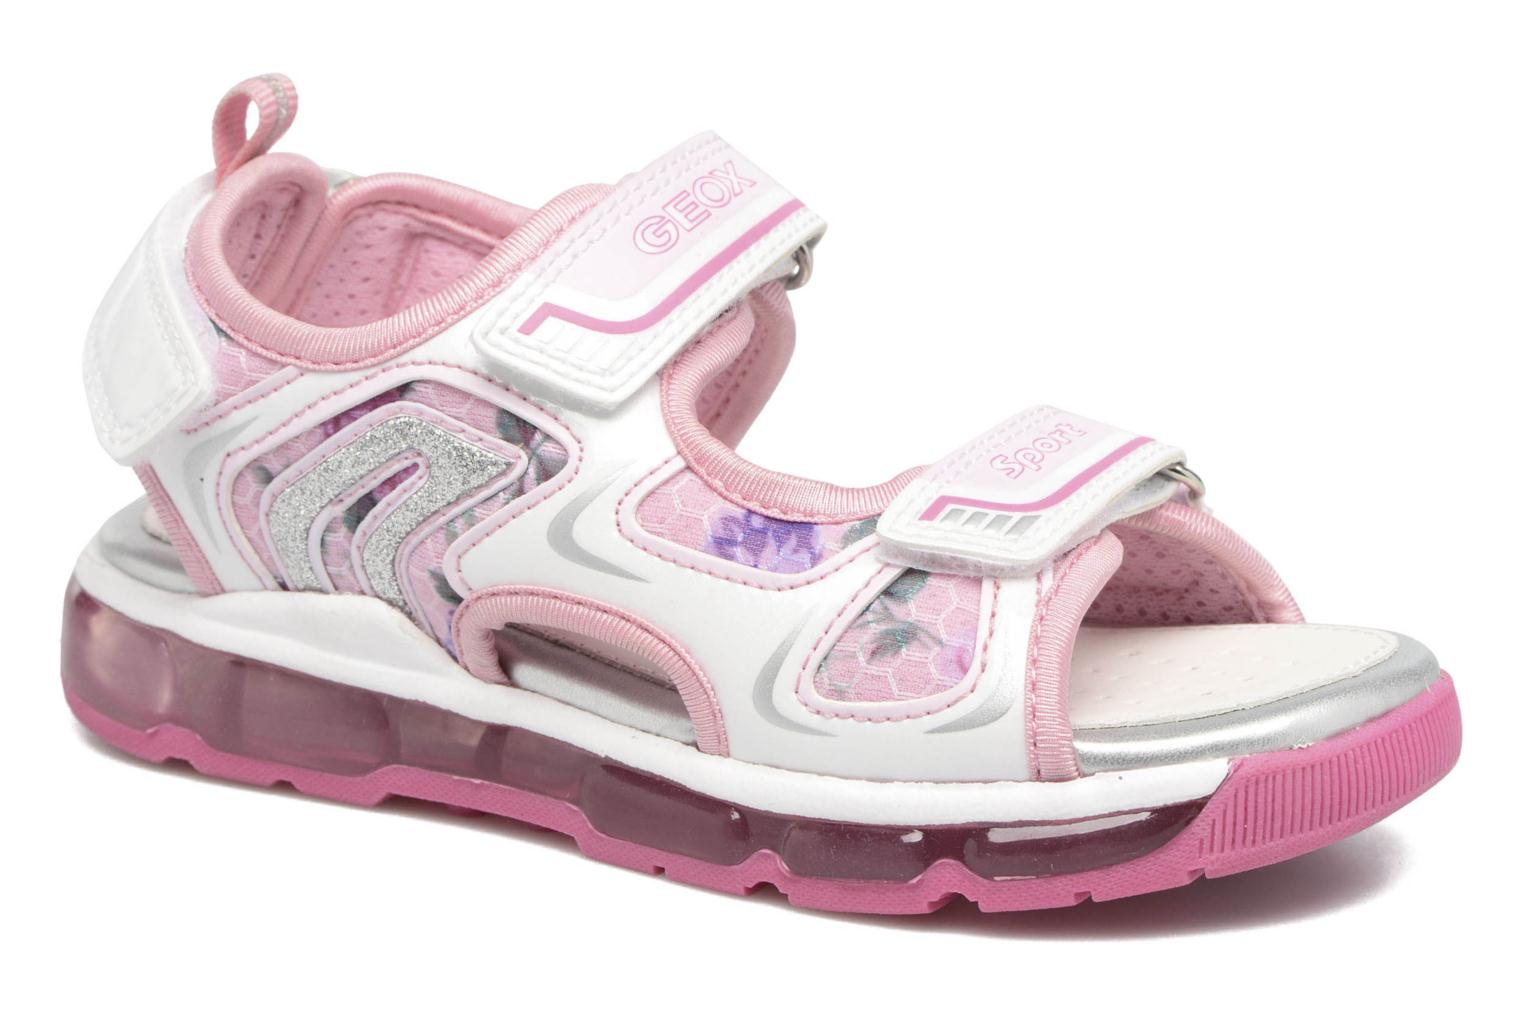 J SANDAL ANDROID GIR by Geox